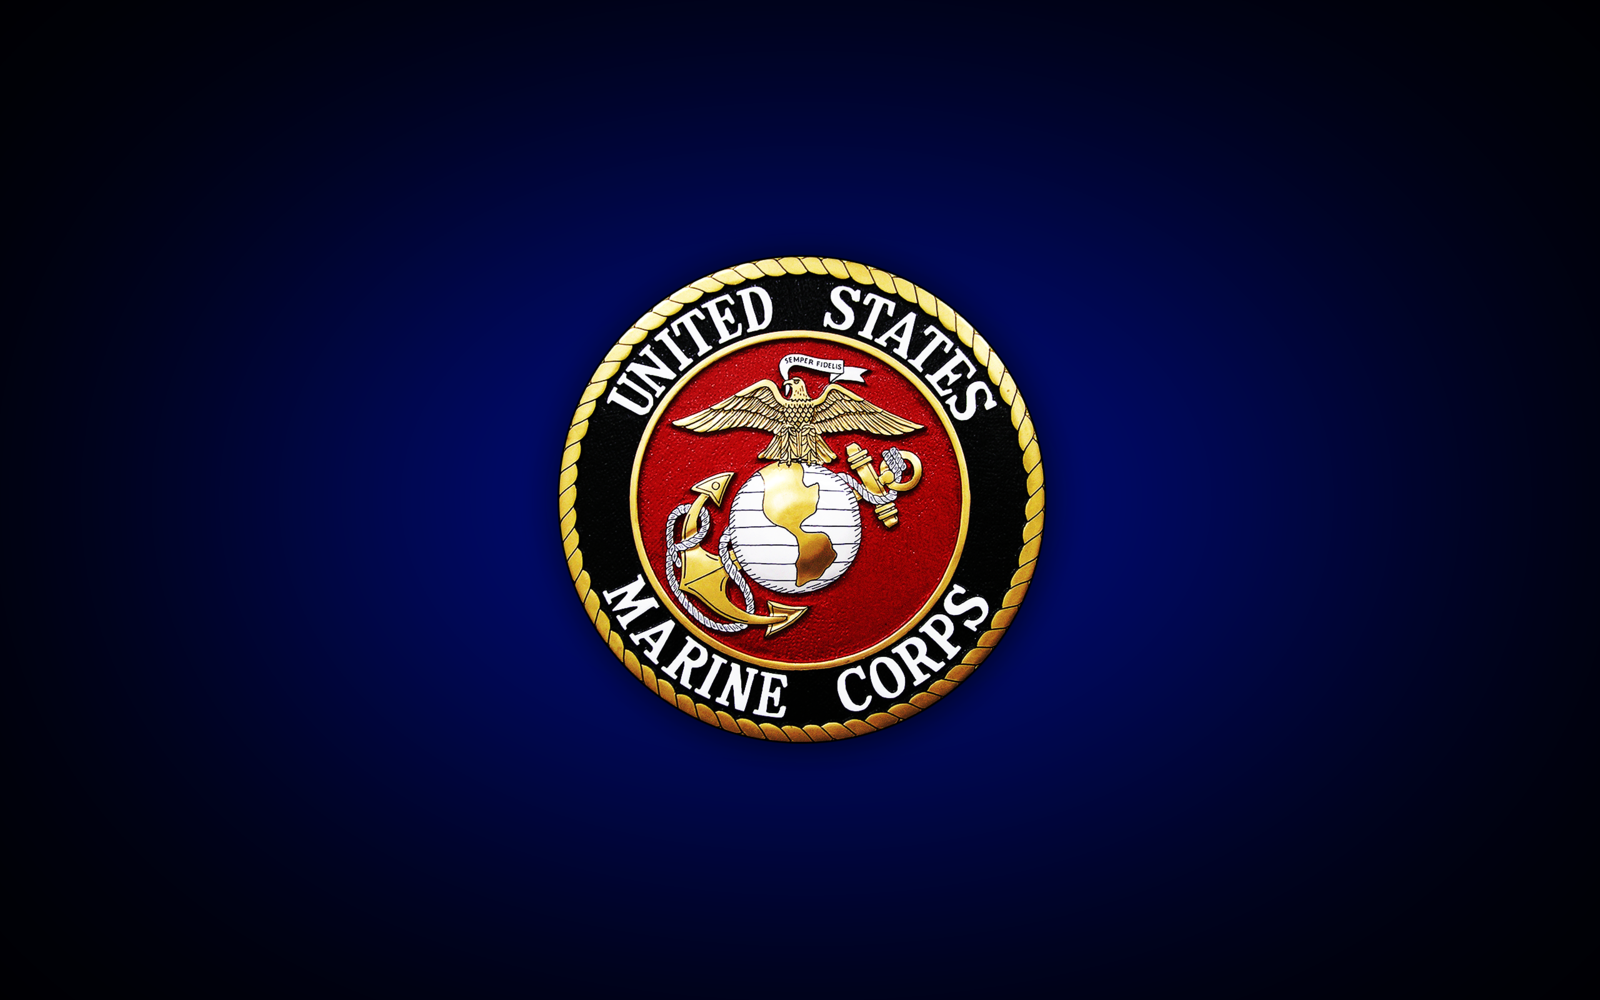 United States Marine Corps Wallpaper Cool HD Wallpapers 1600x1000